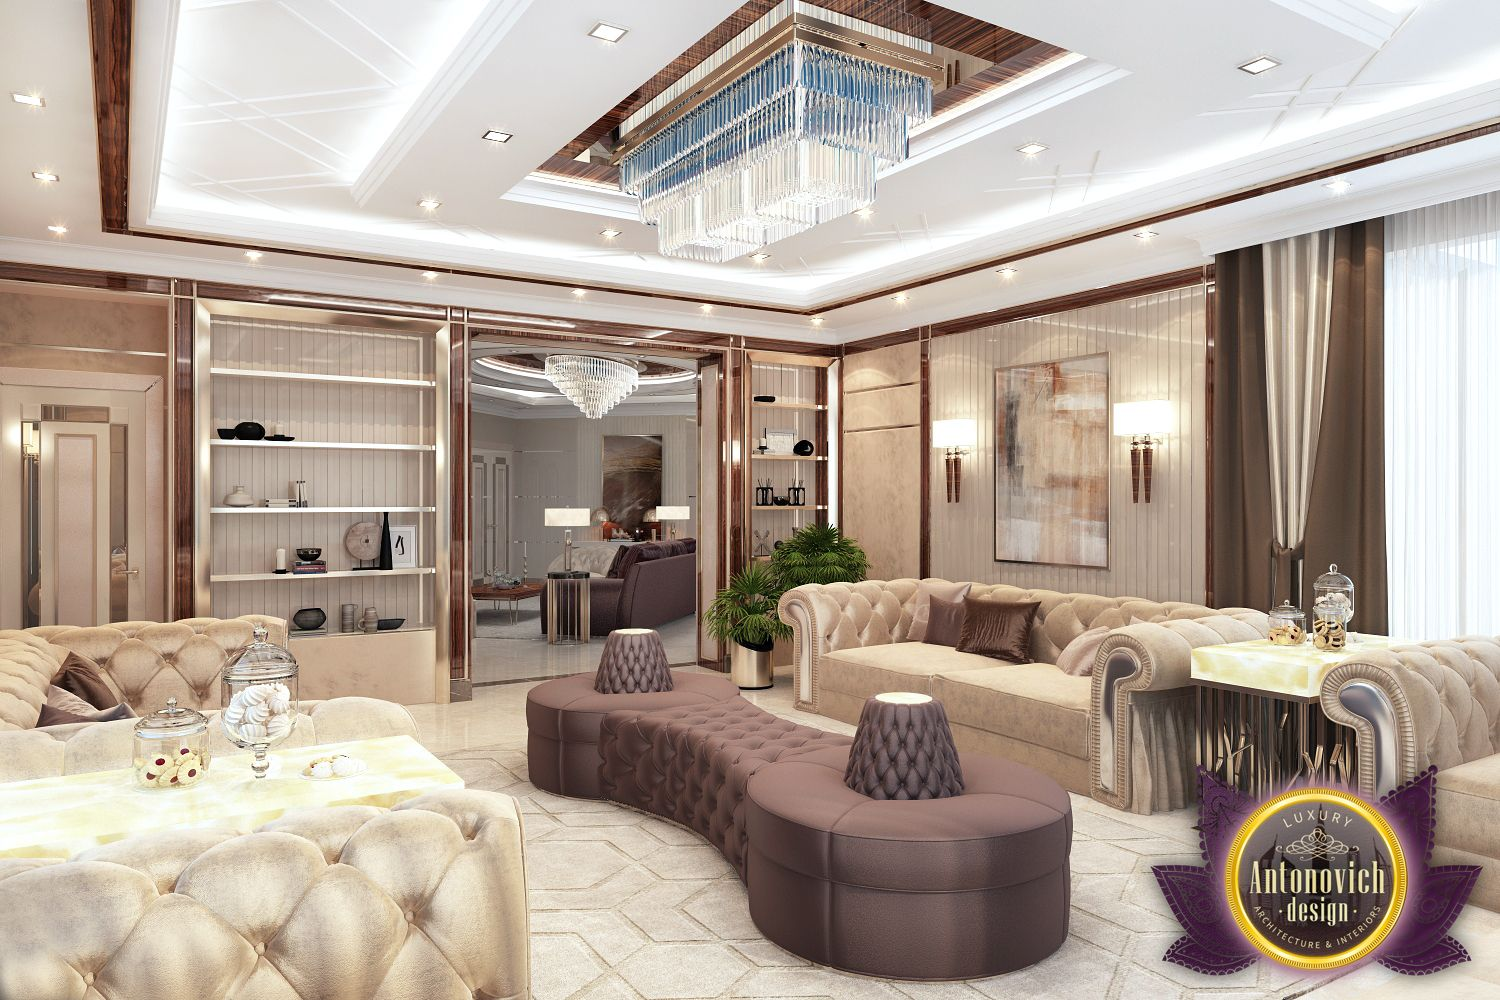 A large number of furniture indicates cordiality and hospitality of the owners of the house this is a fine example of modern luxury with accent nouveau and